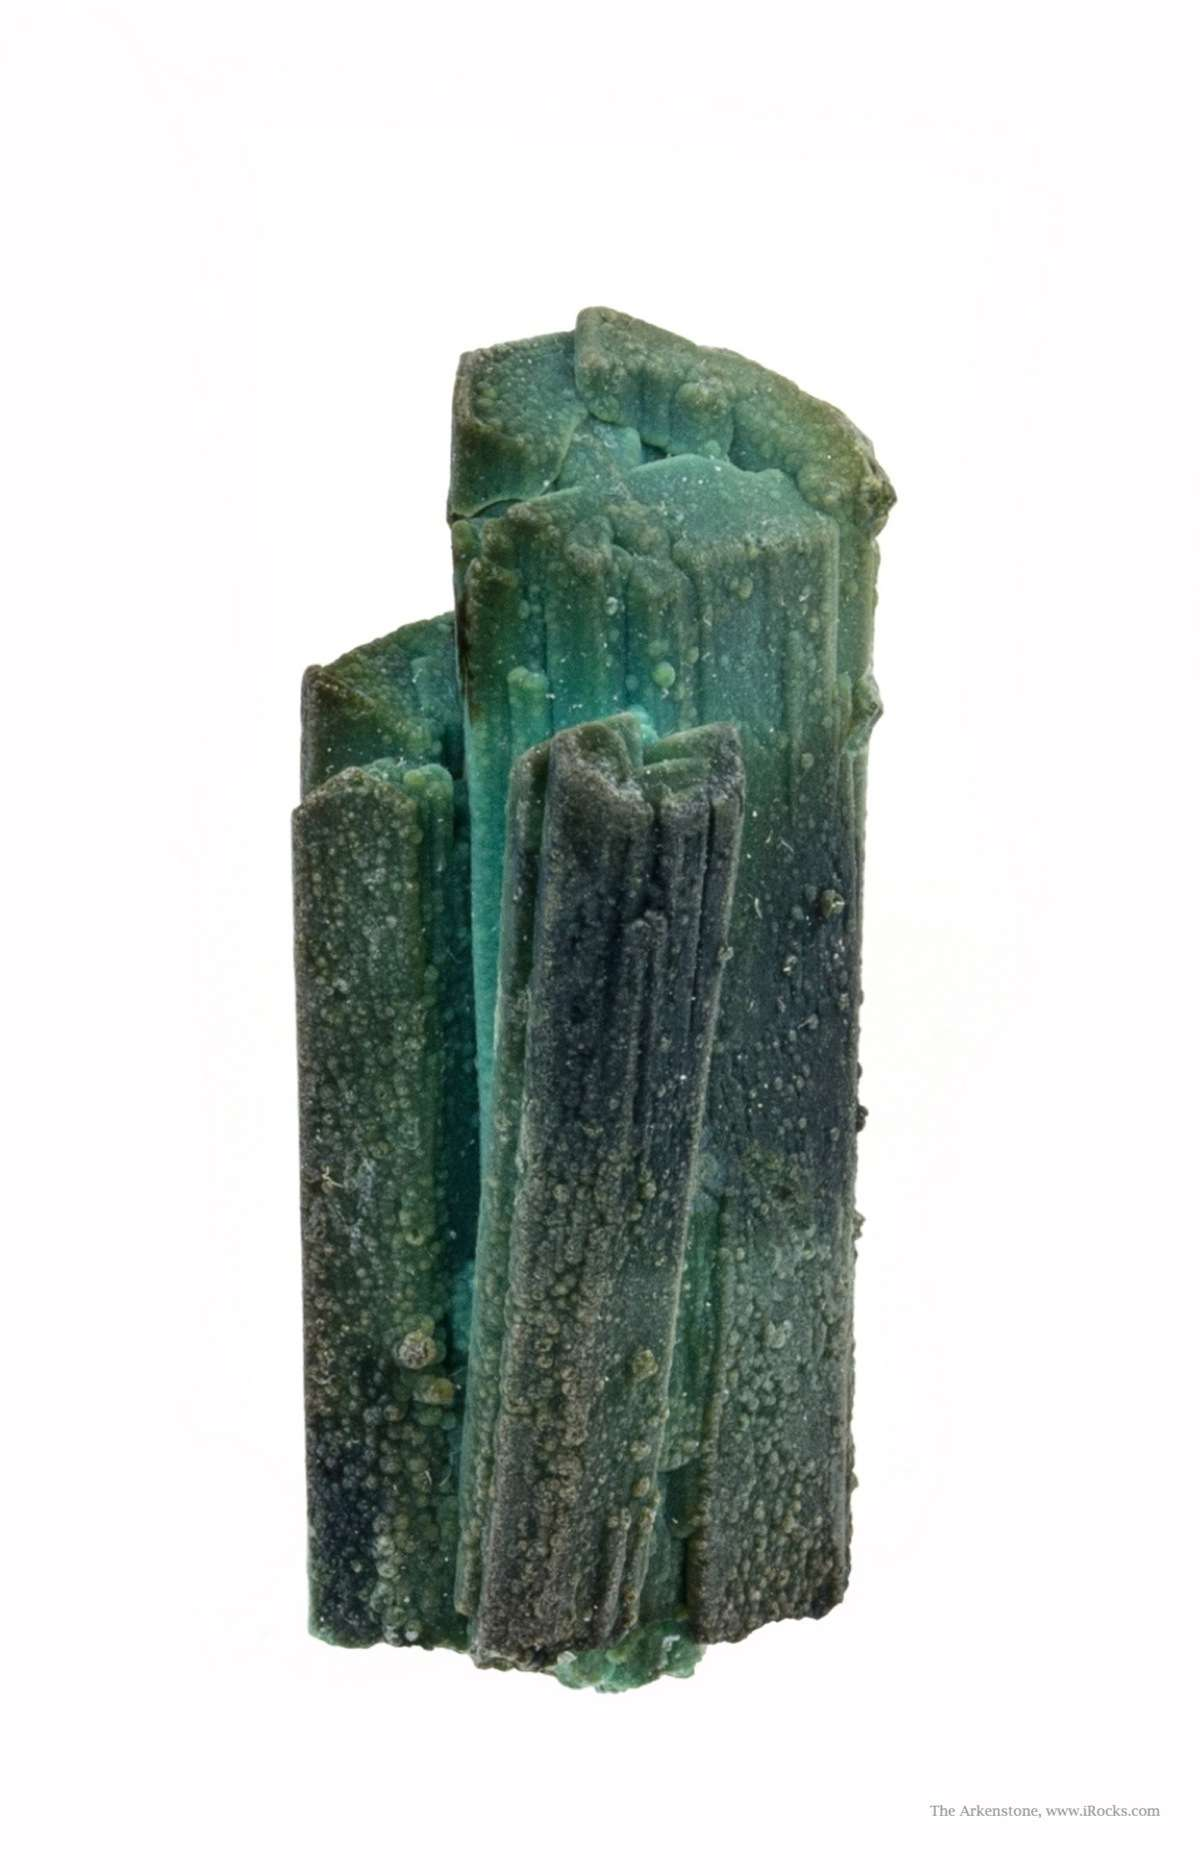 A classic example rare stereotypic replacements azurite chrysocolla